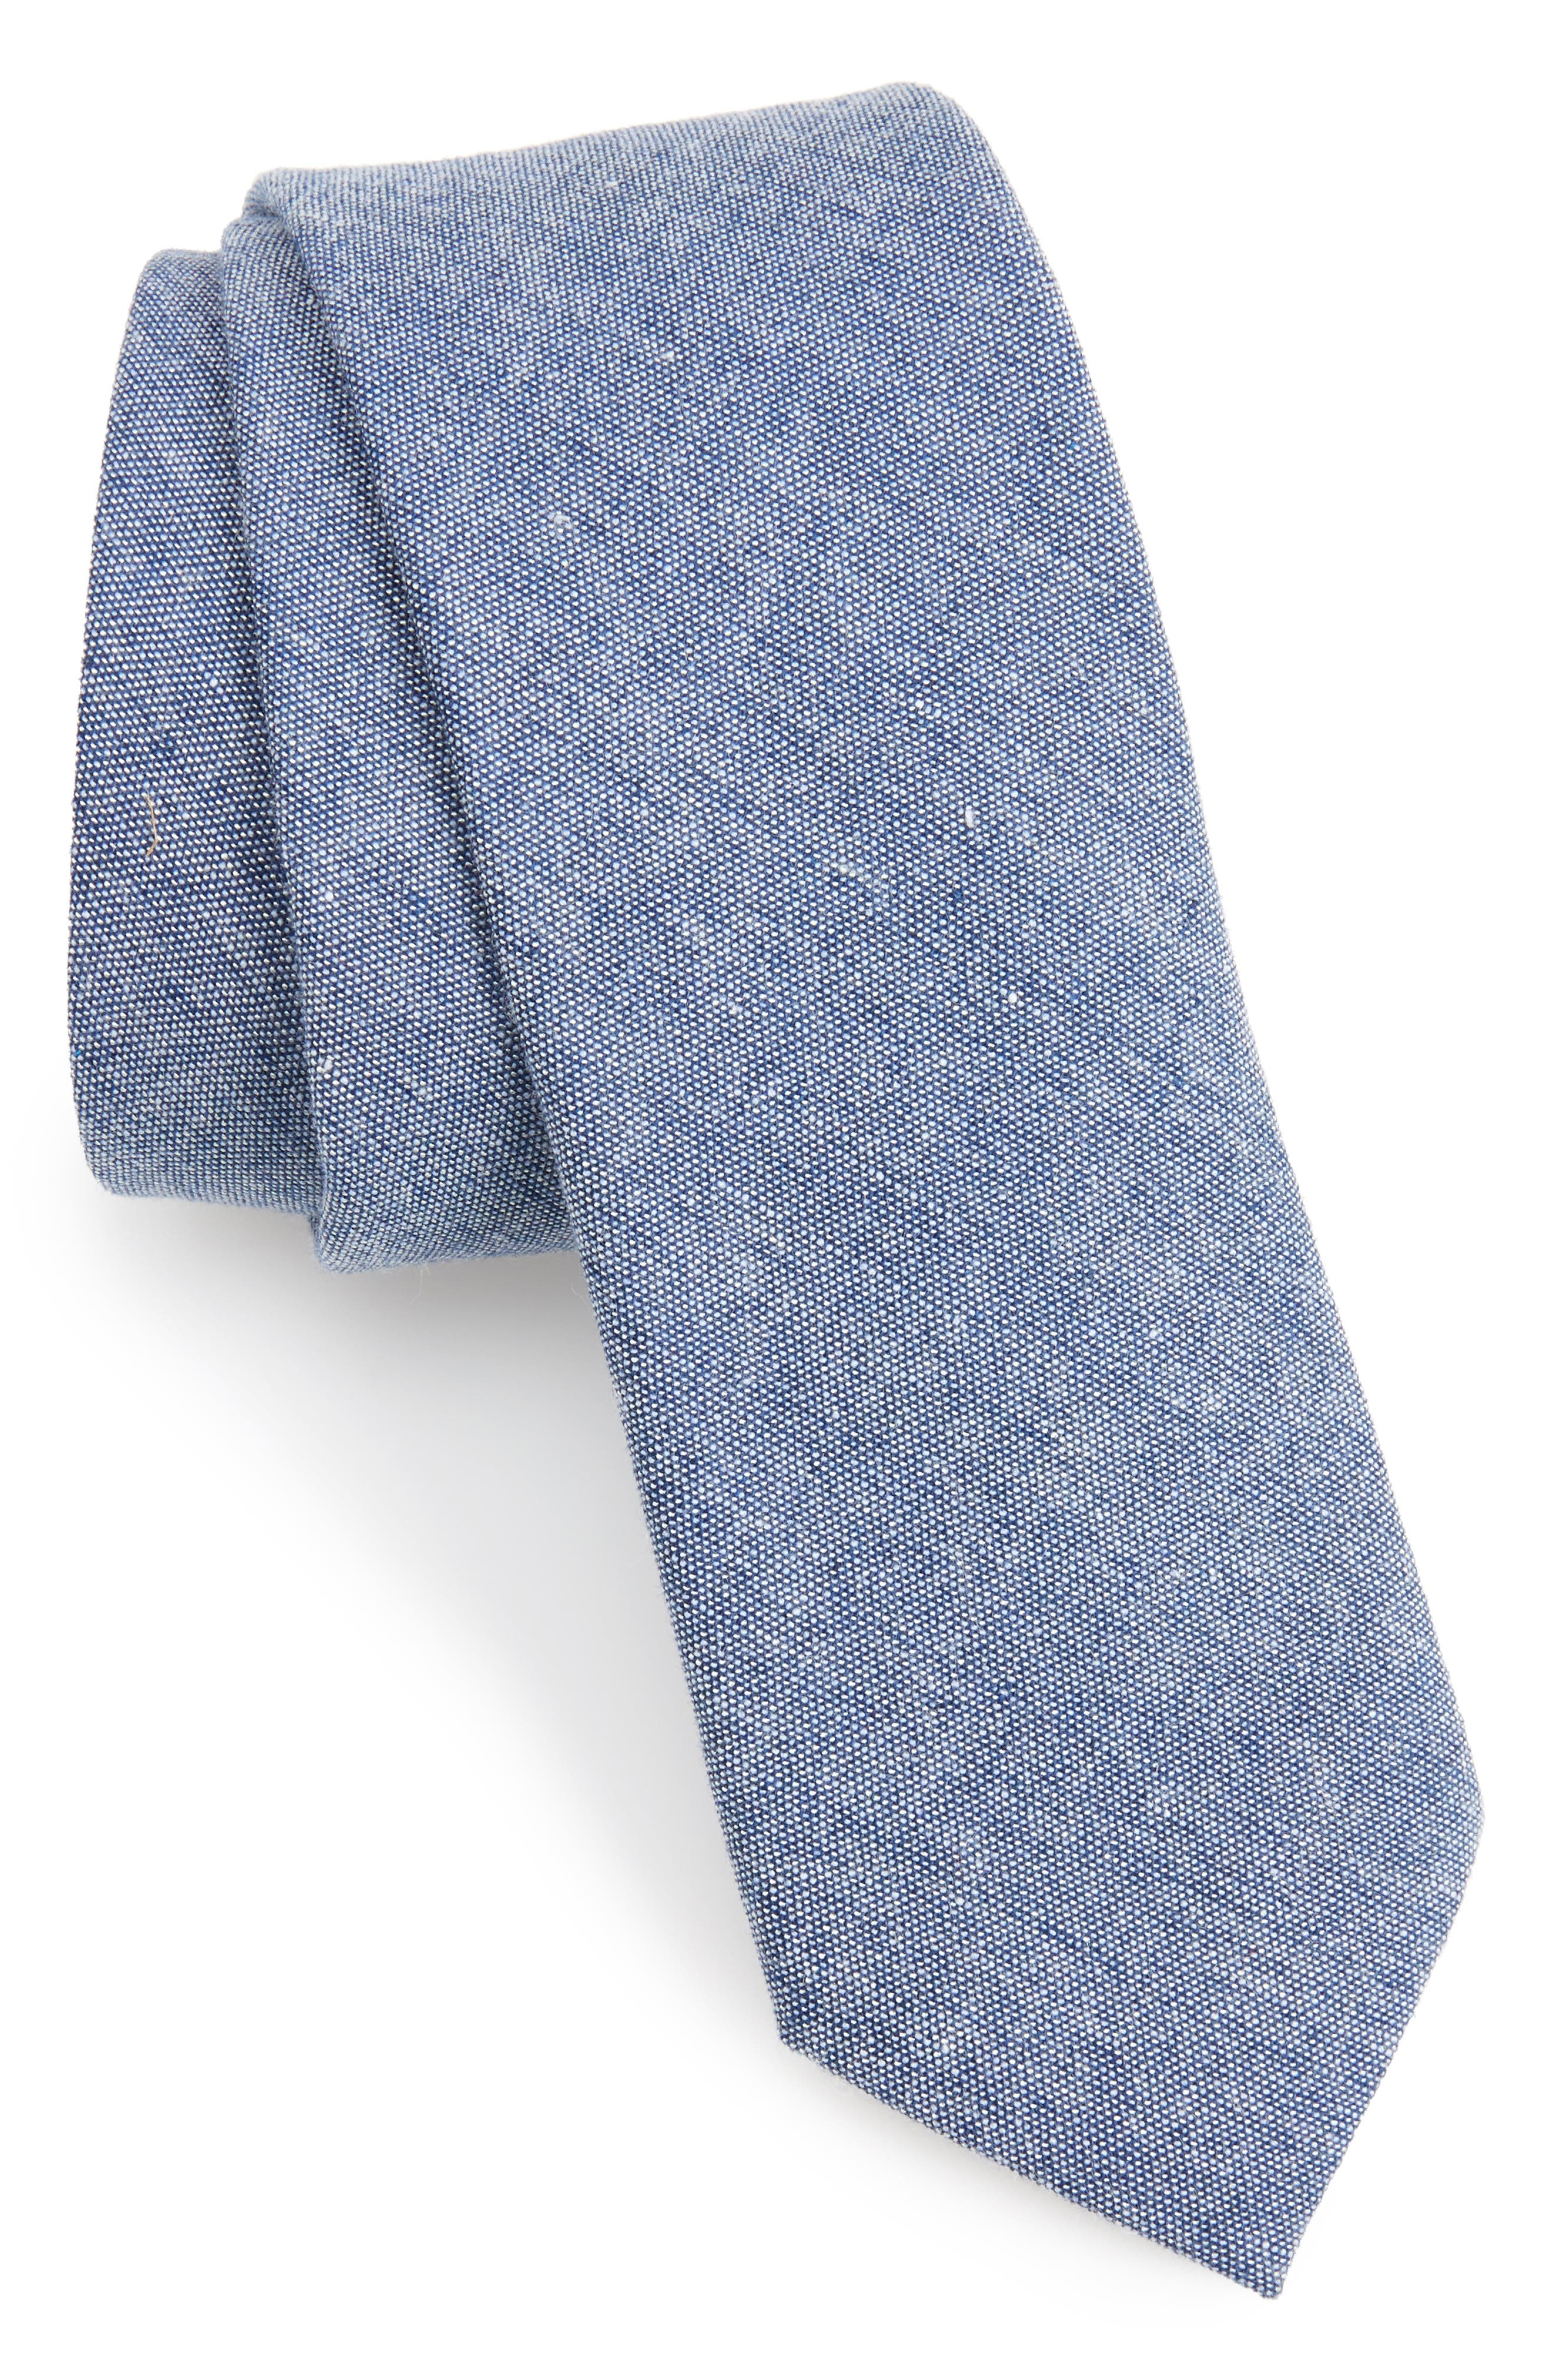 Textured Skinny Tie,                             Main thumbnail 1, color,                             Navy